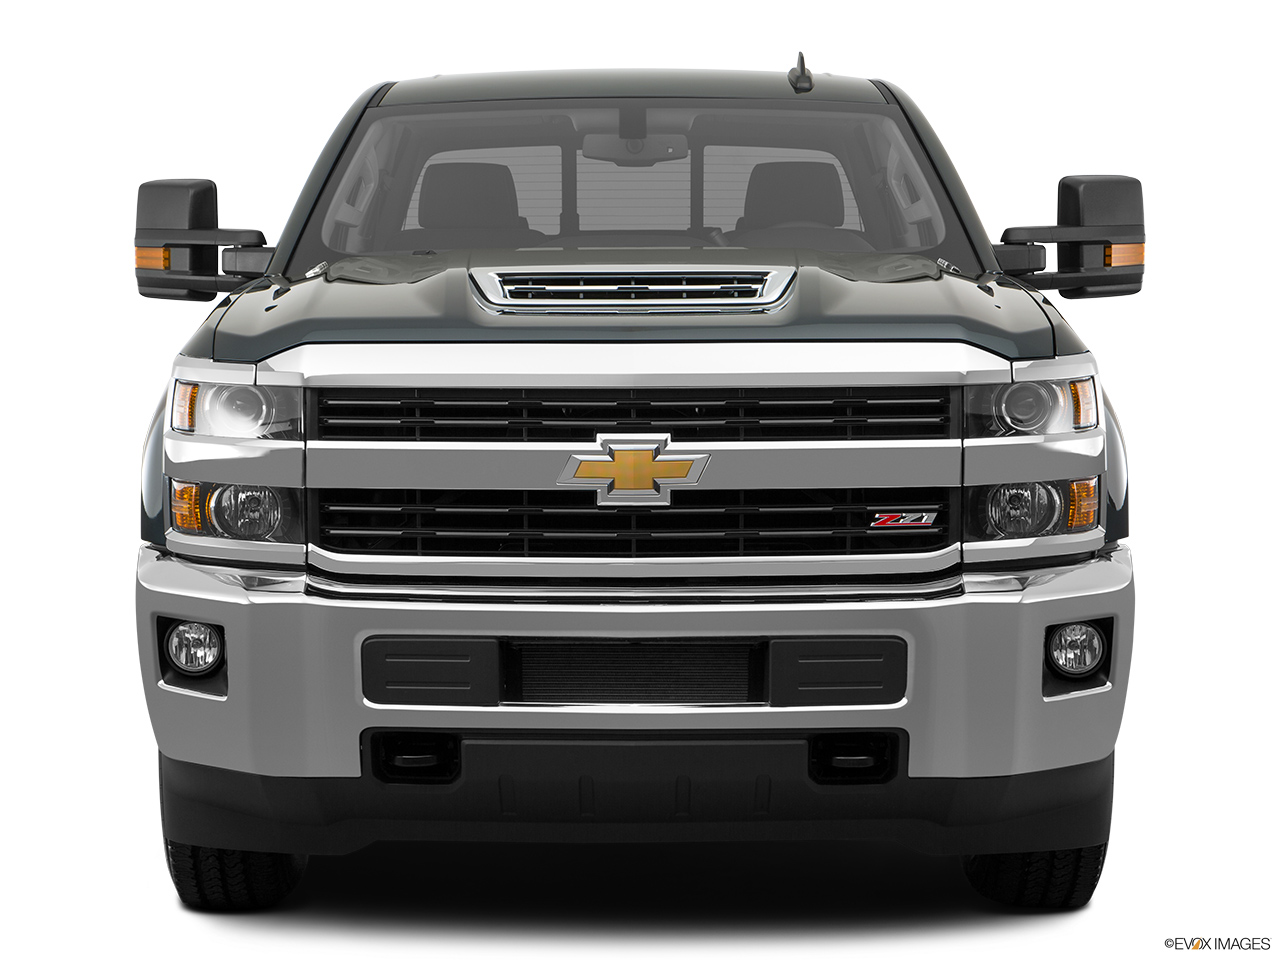 chevrolet silverado midnight edition 2017 2500 in qatar new car prices specs reviews photos. Black Bedroom Furniture Sets. Home Design Ideas